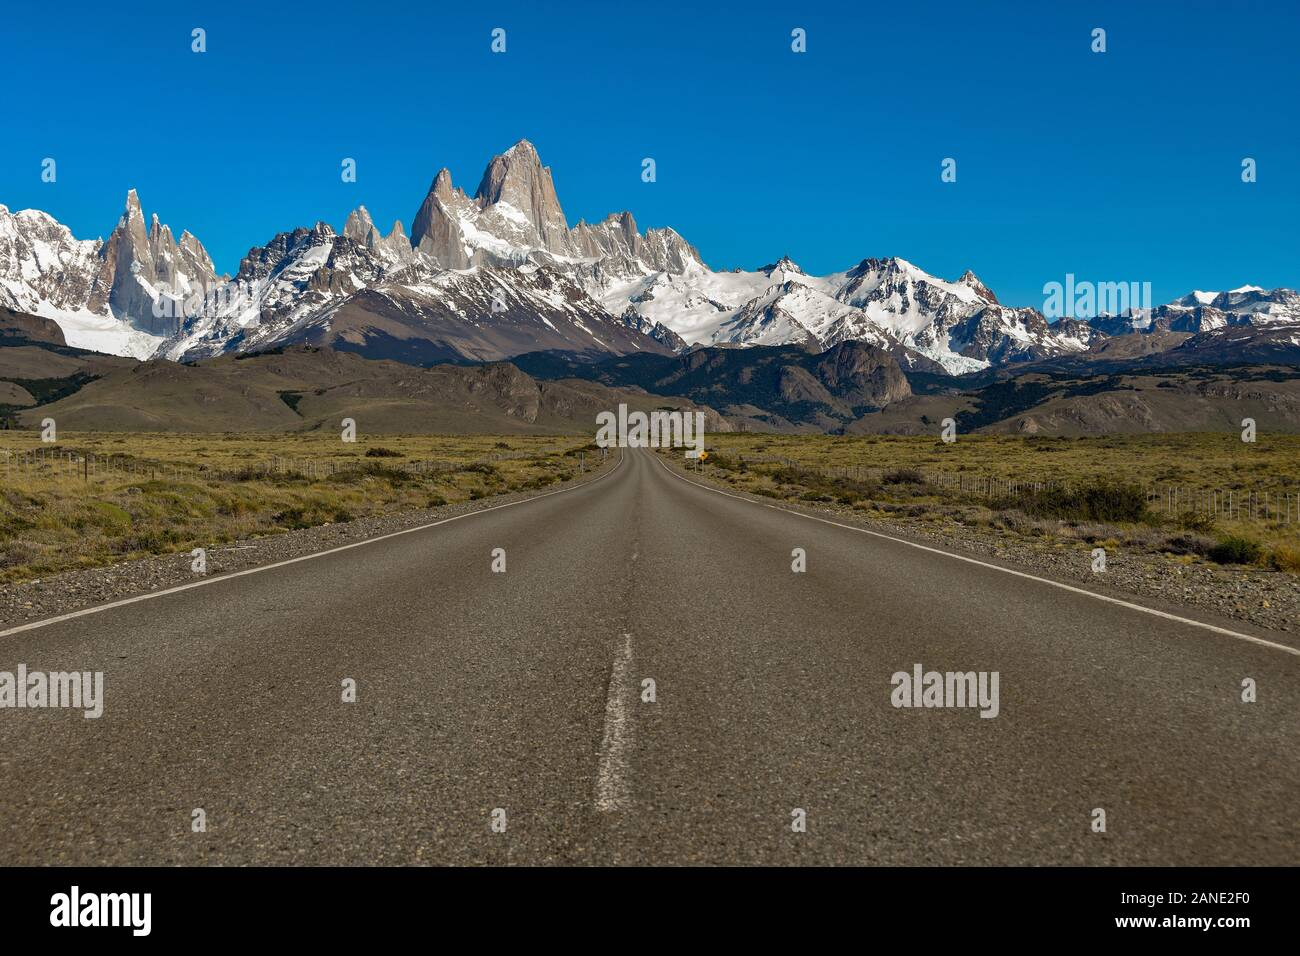 Road towards El Chalten with famous mountains Fitz Roy and Cerro Torre, patagonia, Argentina Stock Photo